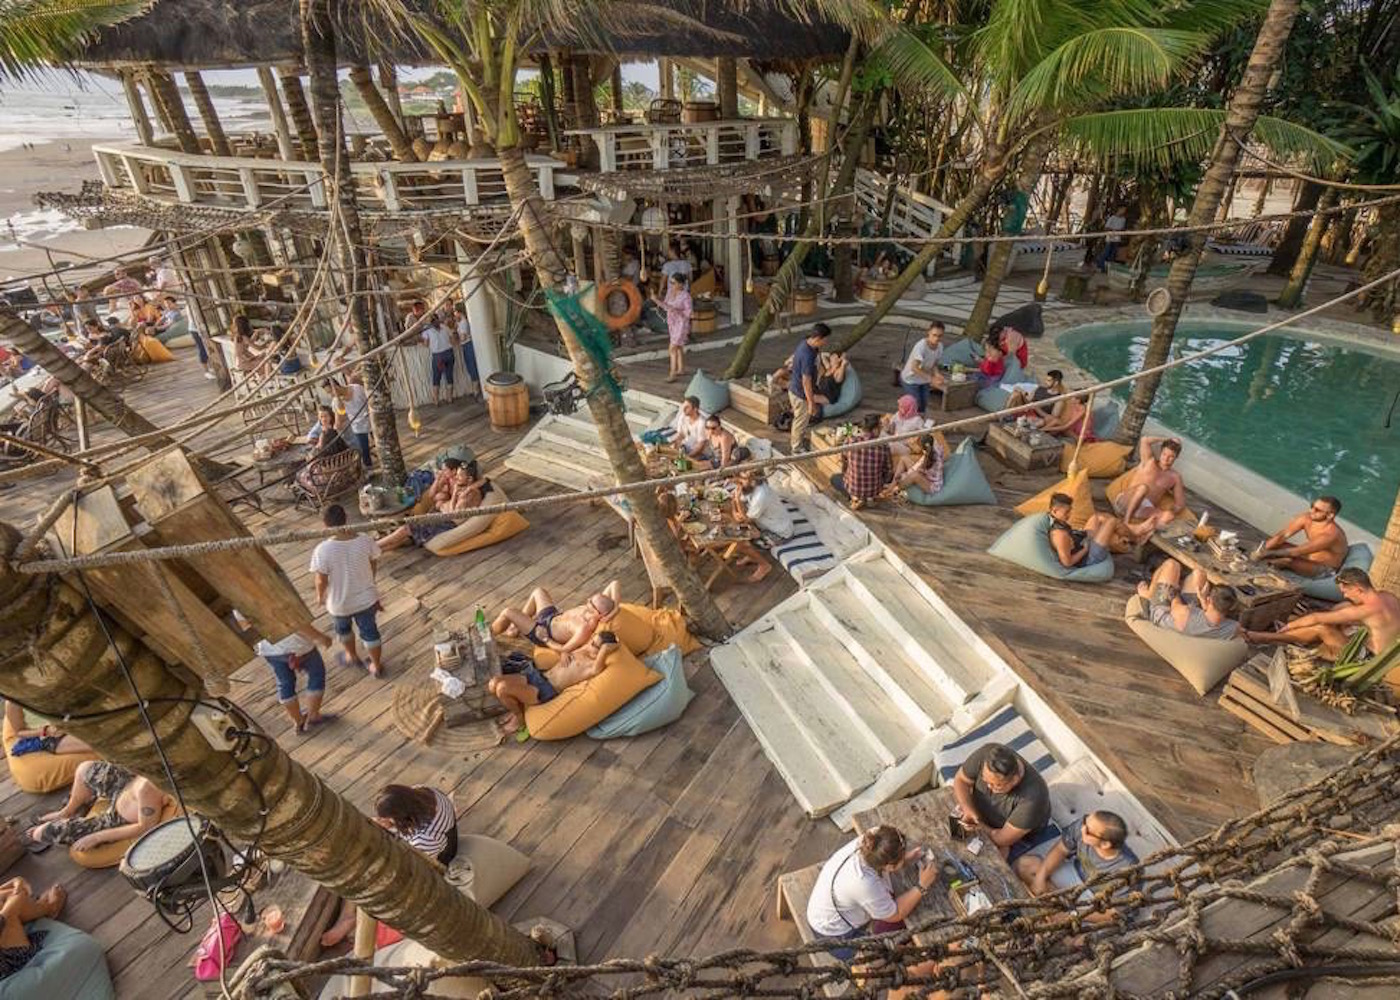 La Brisa beach club on Echo Beach. A favourite bar and sunset spot in Canggu, Bali, Indonesia